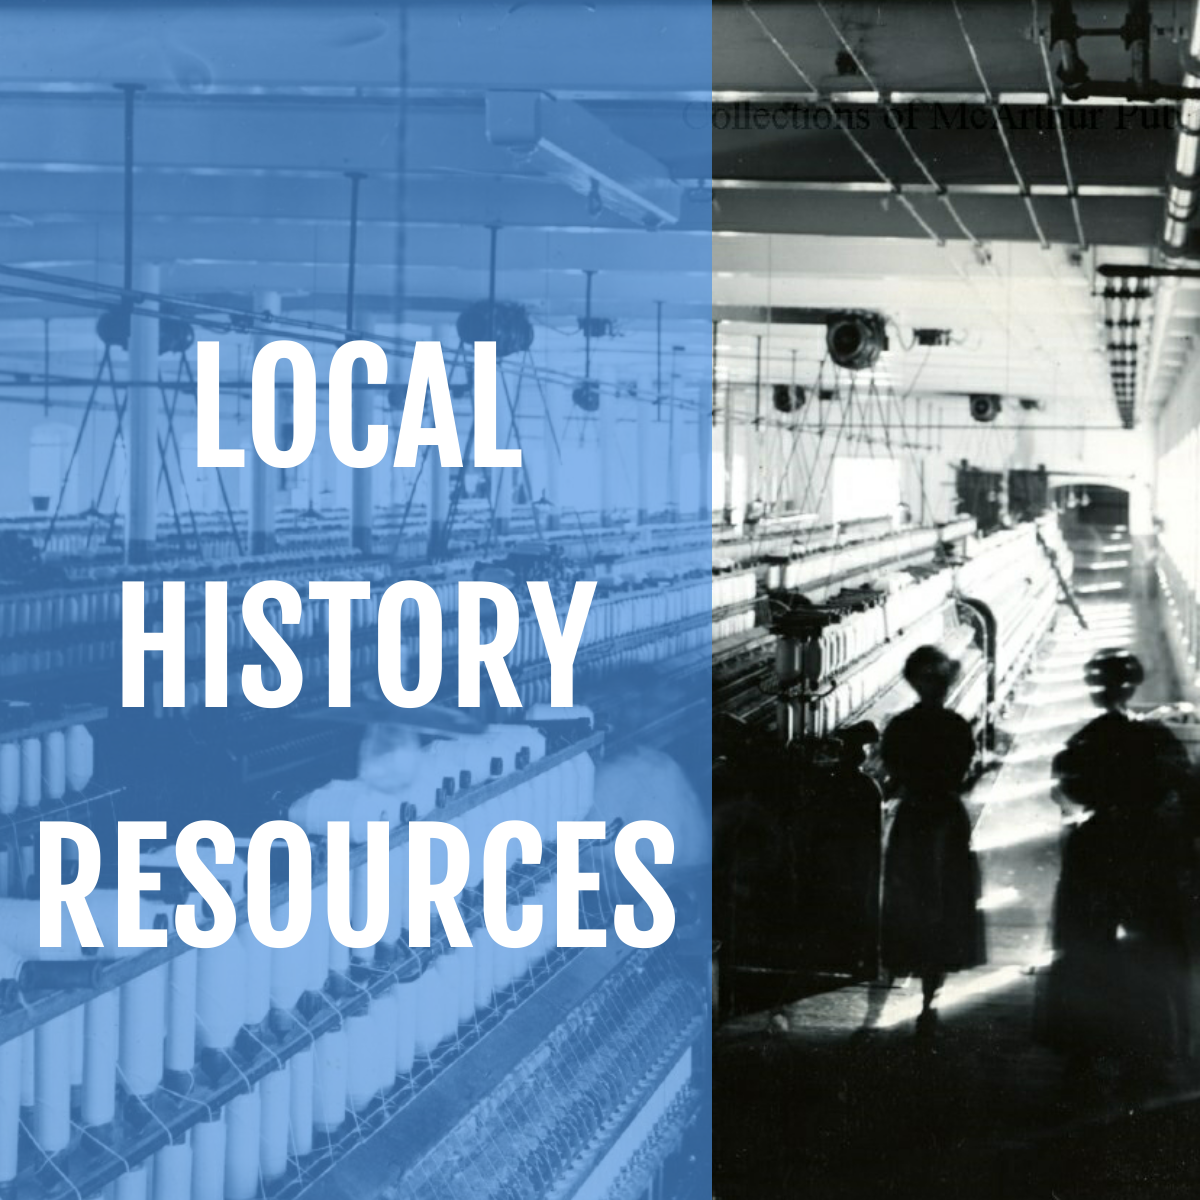 Local History Resources